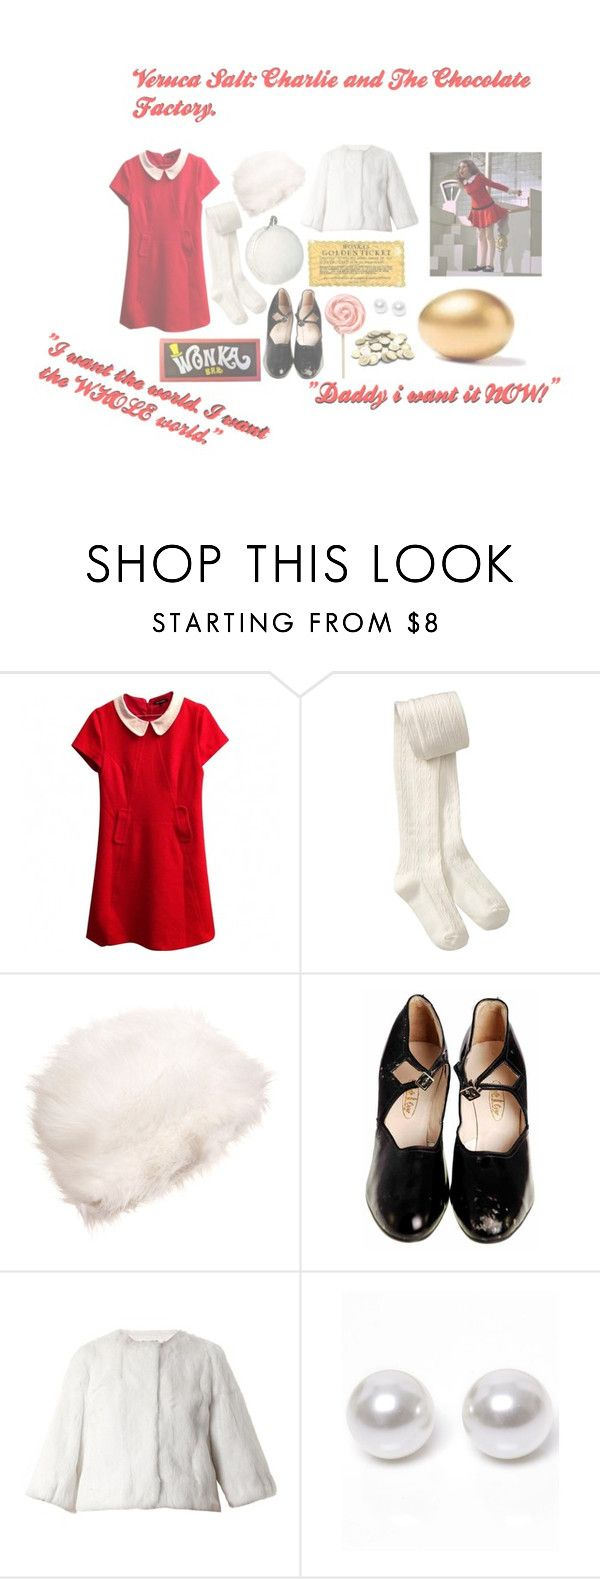 """Veruca Salt: Charlie and The Chocolate Factory"" by vintageenglishrose ❤ liked on Polyvore featuring Tara Jarmon, Old Navy, Christian Louboutin, RED Valentino, Nouv-Elle, movie, book, film, charlieandthechocolatefactory and verucasalt"